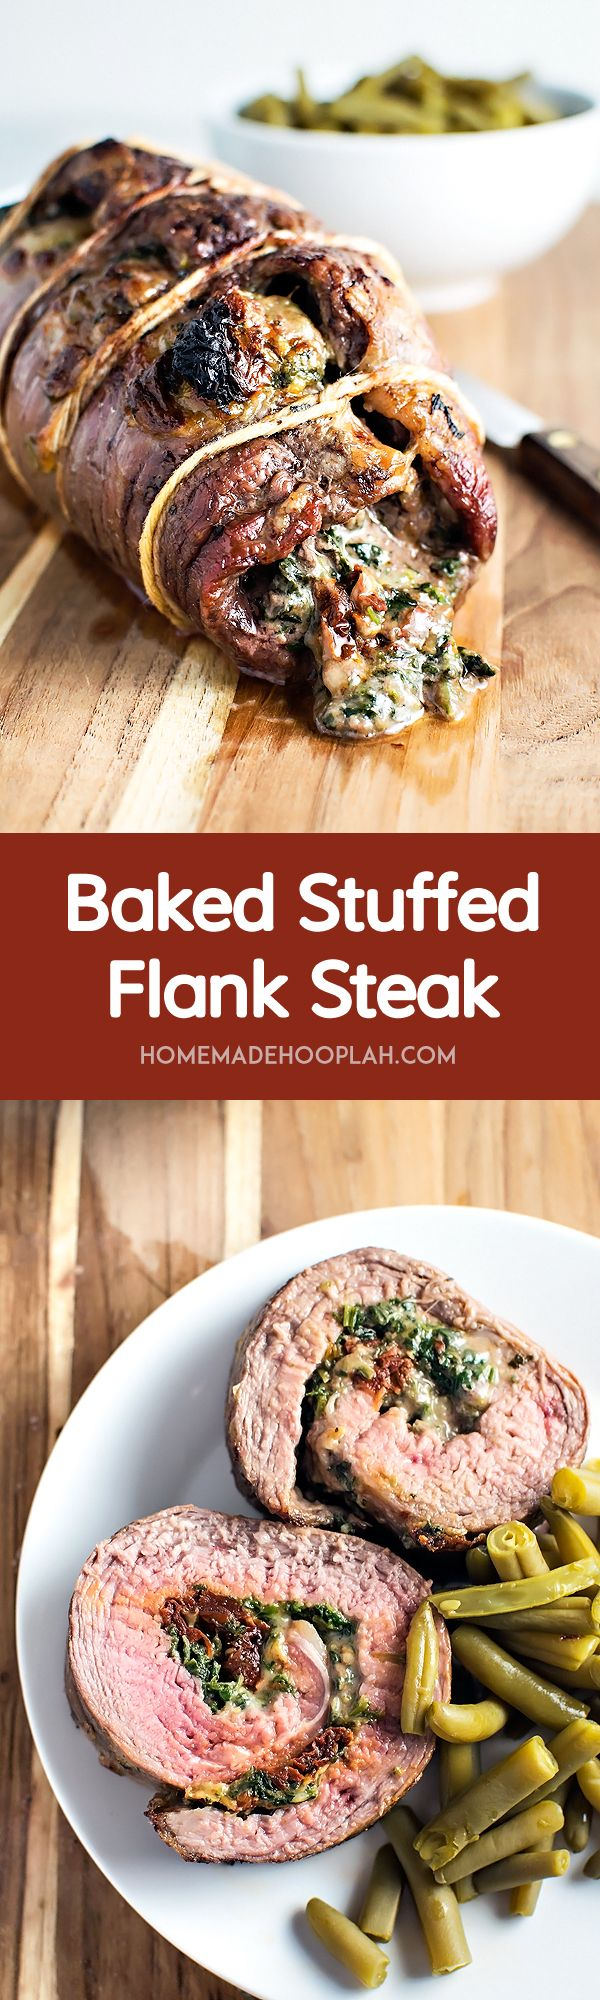 Stuff Flank Steak! Spice up your boring steak dinner by baking a fine cut of meat with spinach, mozzarella, and sun dried tomatoes. |